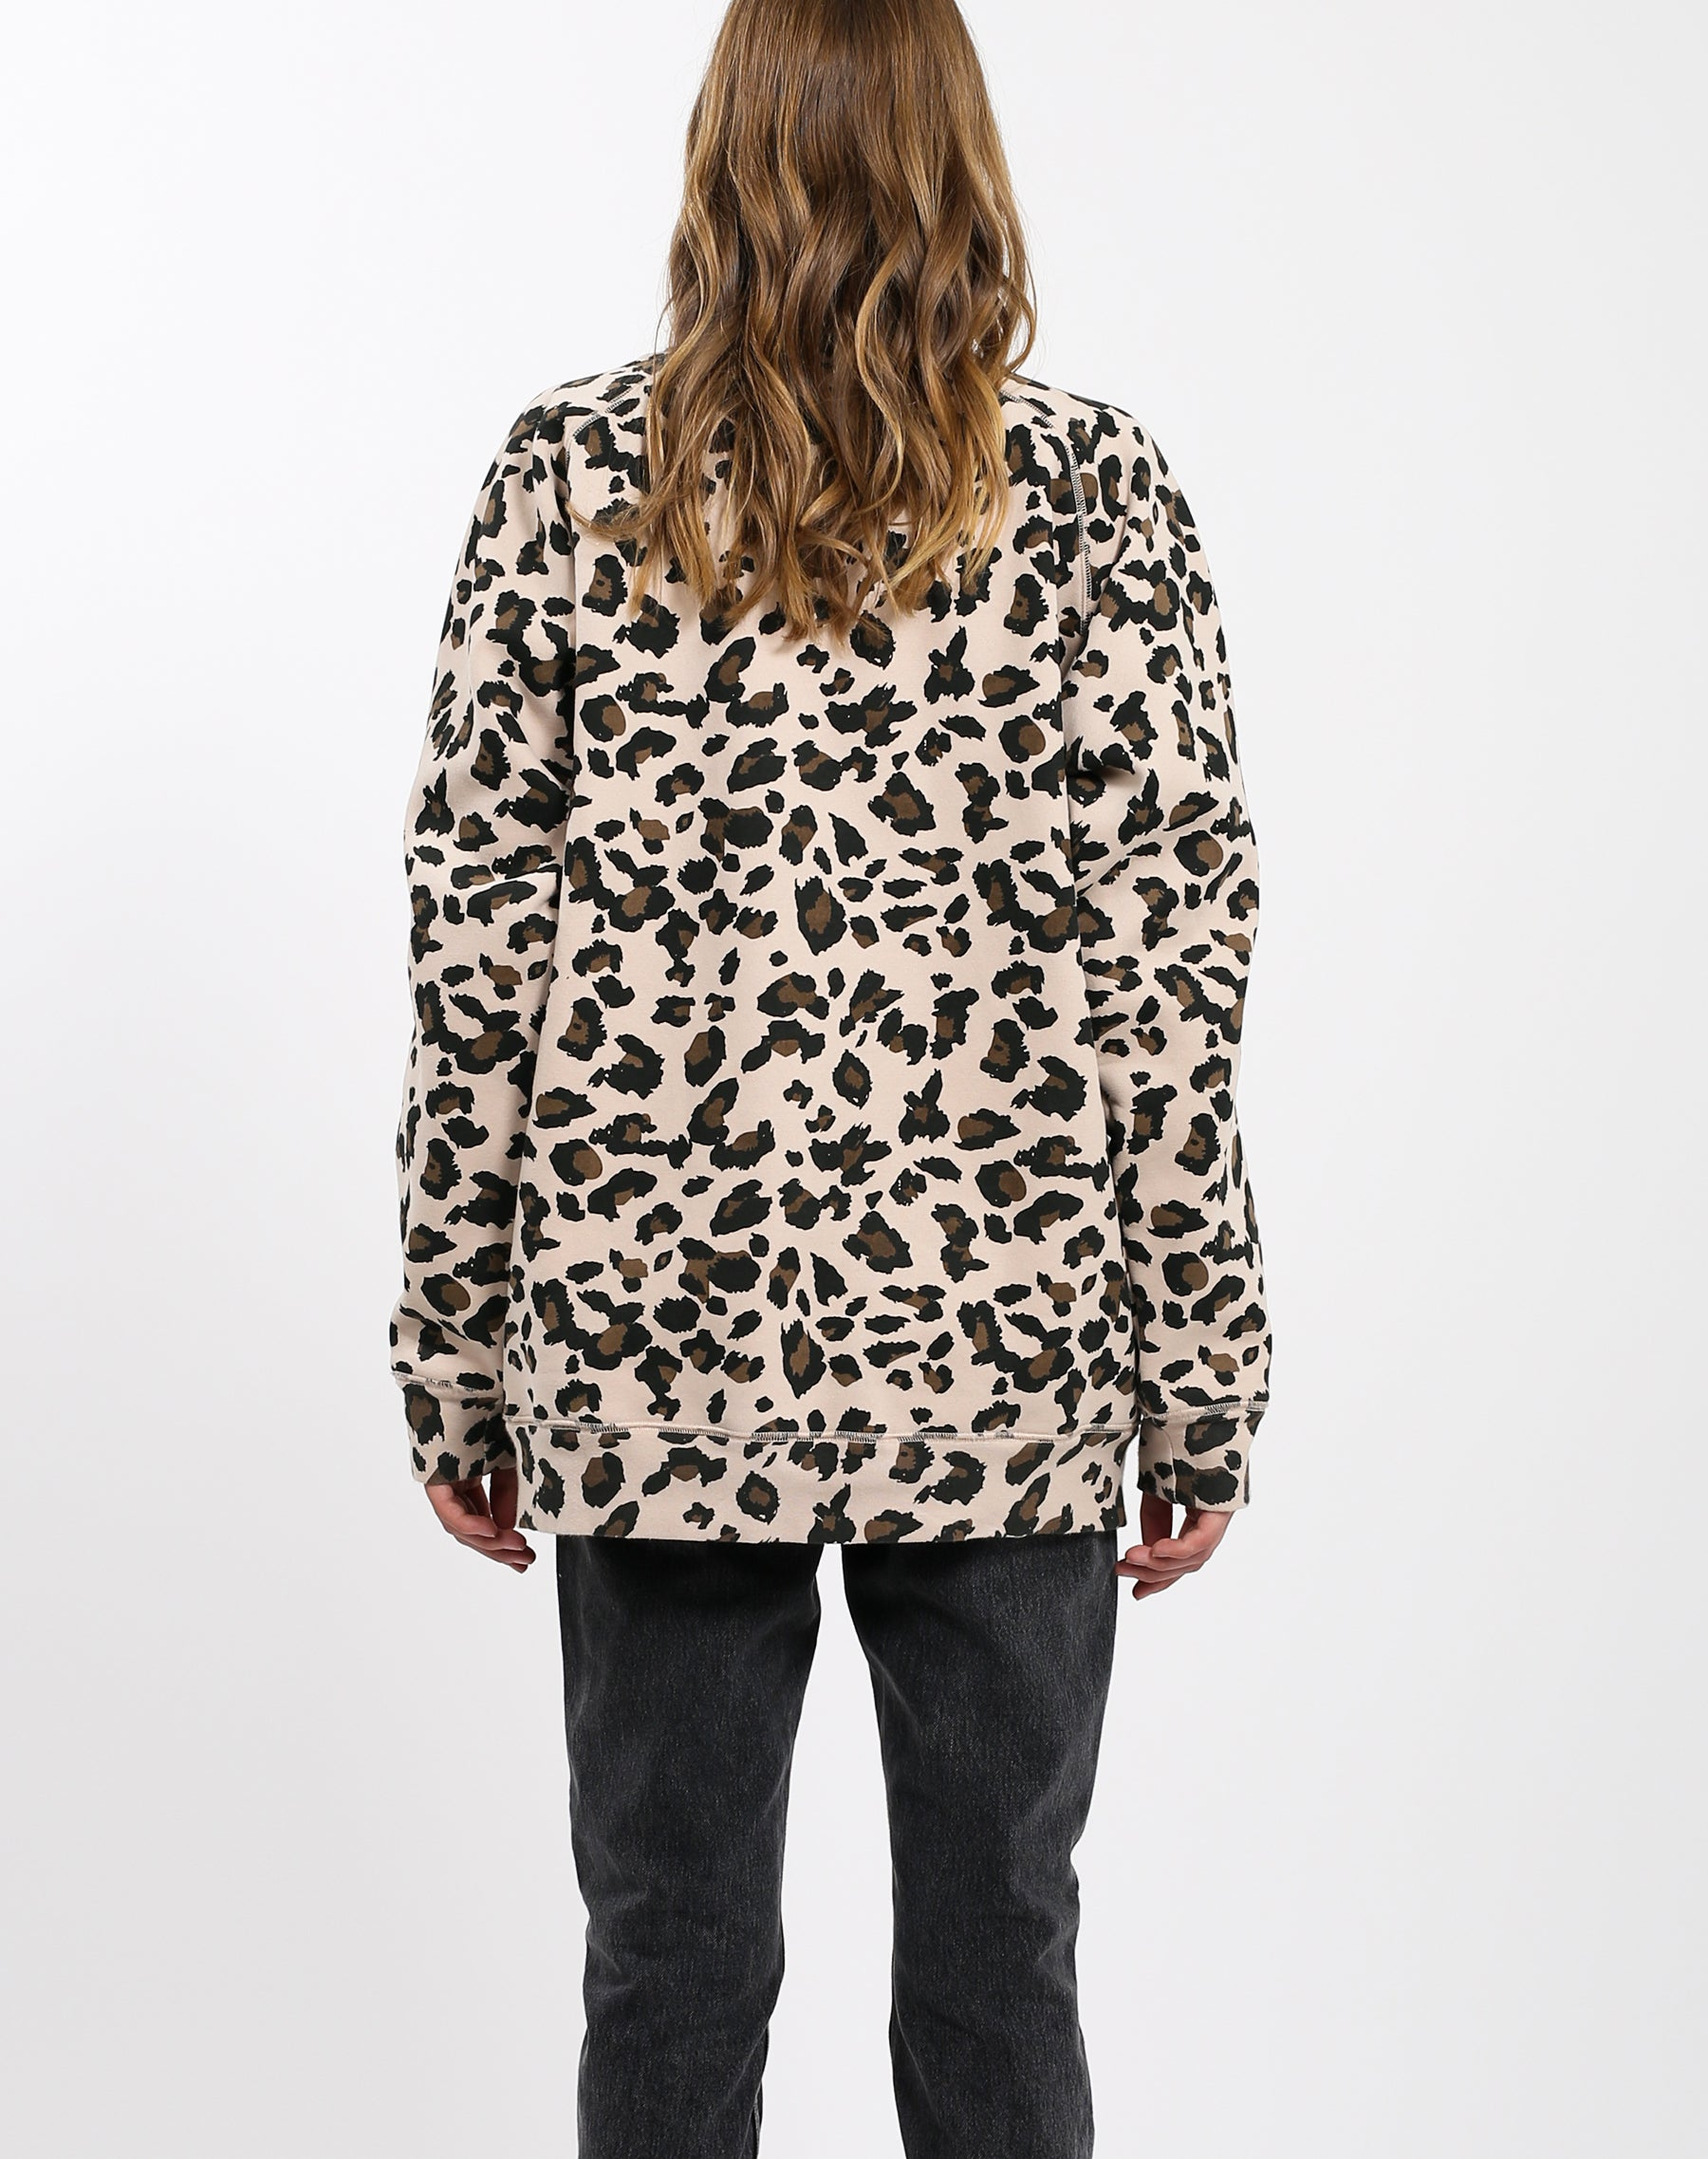 Photo of the back of the Uplift All Babes big sister crew neck sweatshirt in leopard by Brunette the Label.